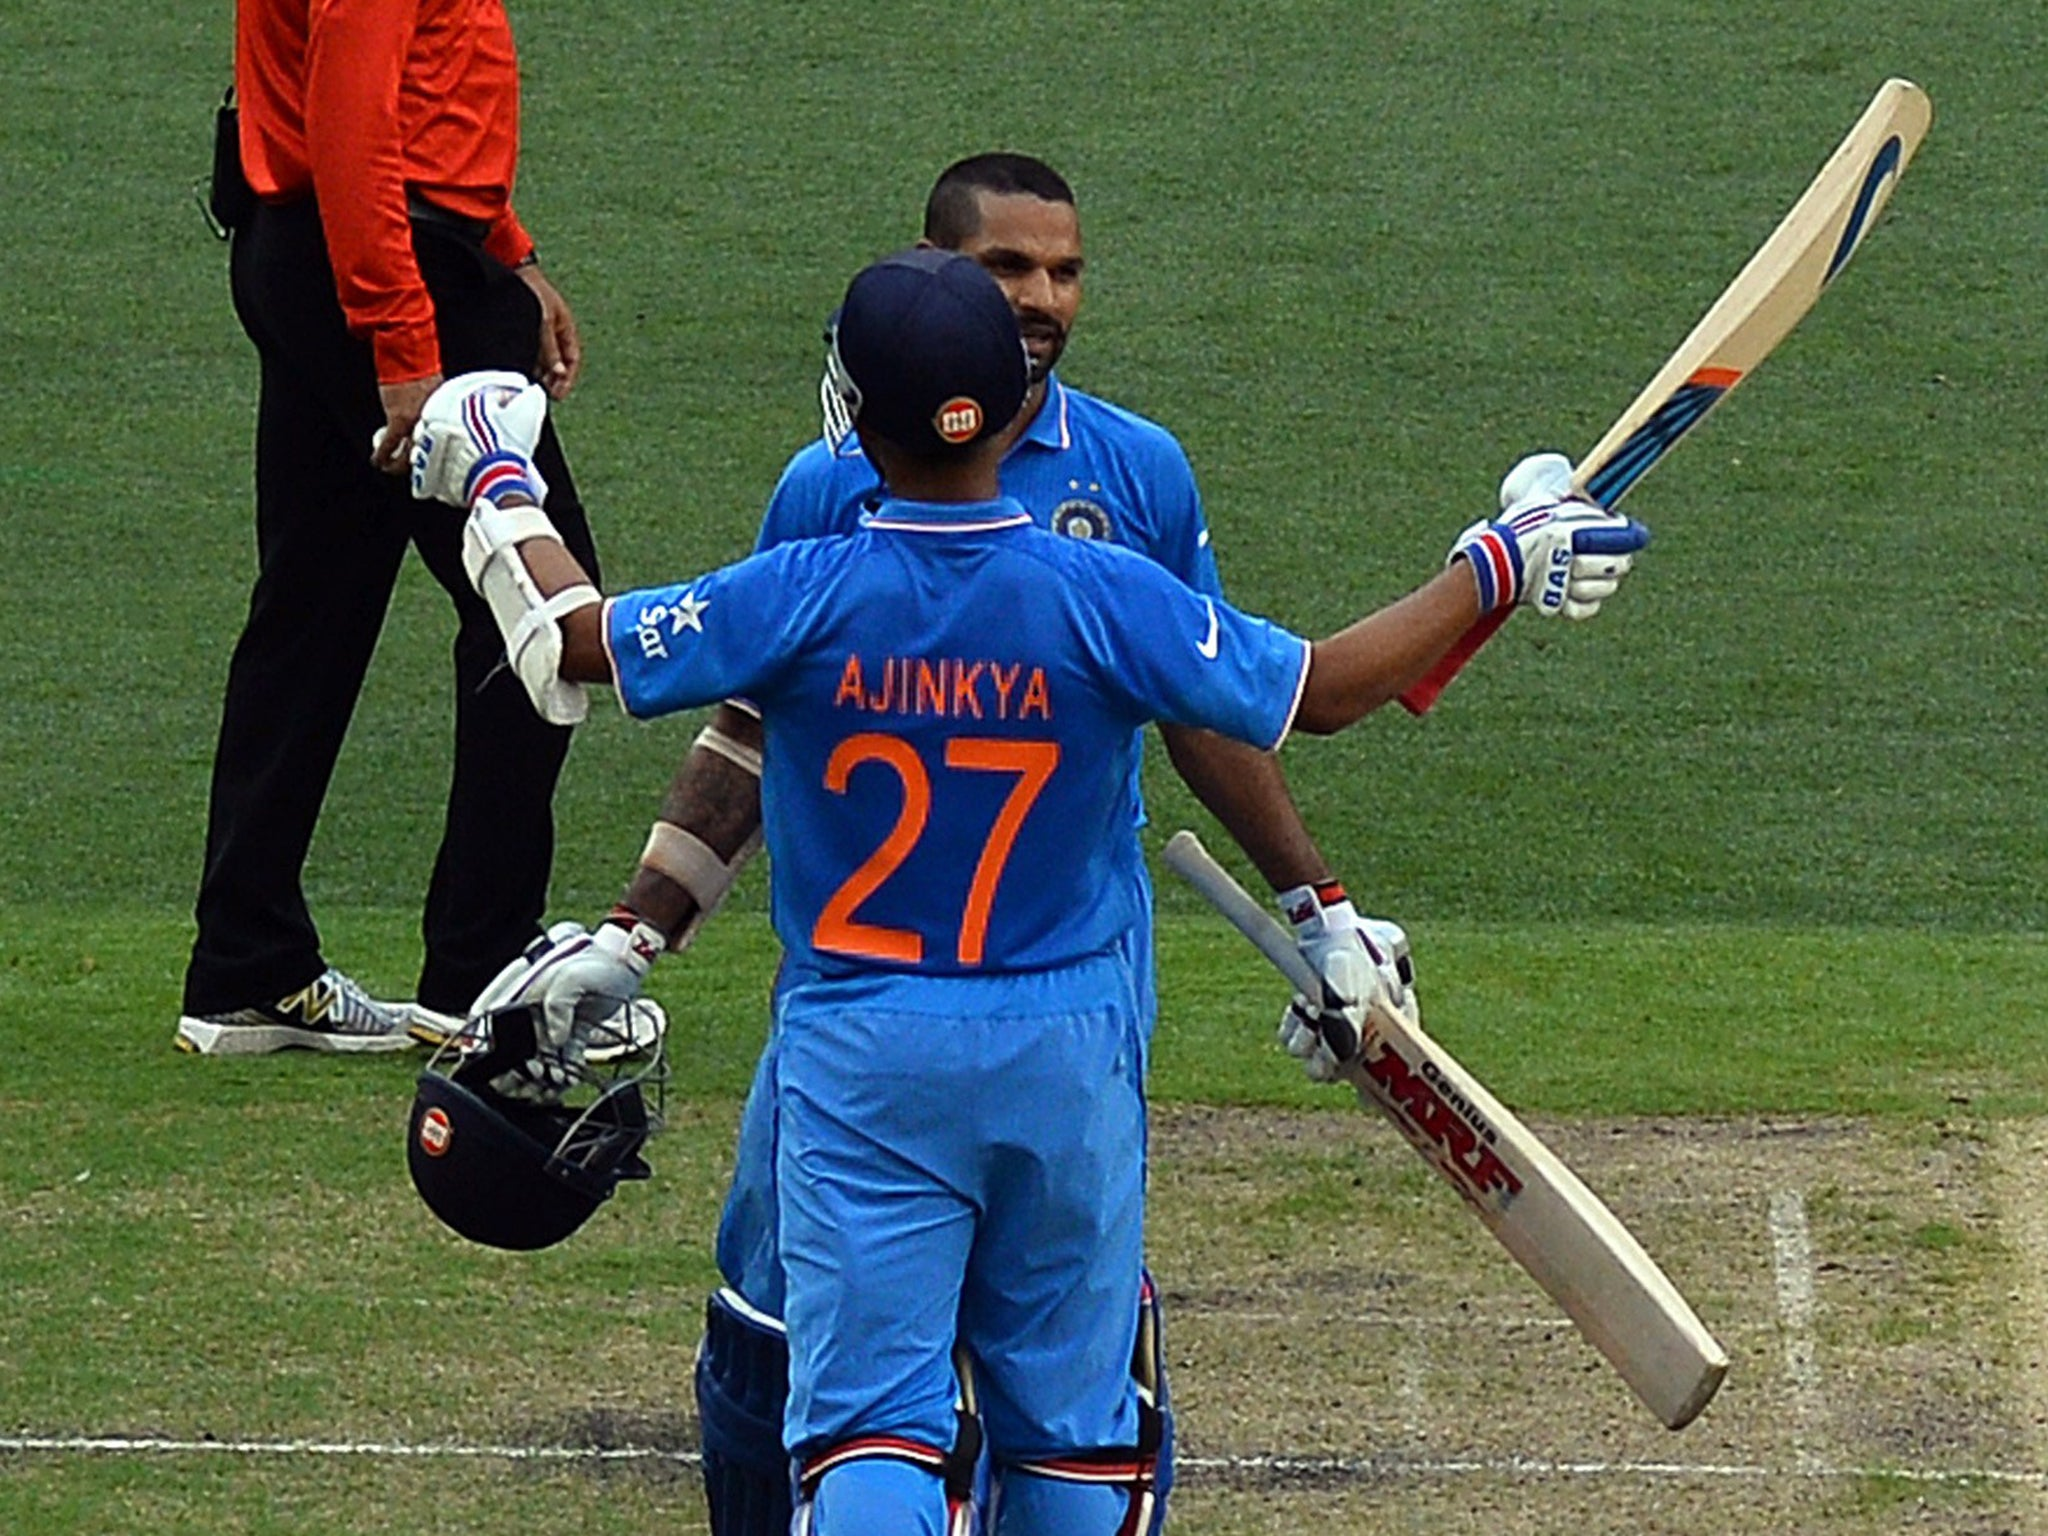 Cricket World Cup 2015 Shikhar Dhawan Century For India Embarrasses South Africa The